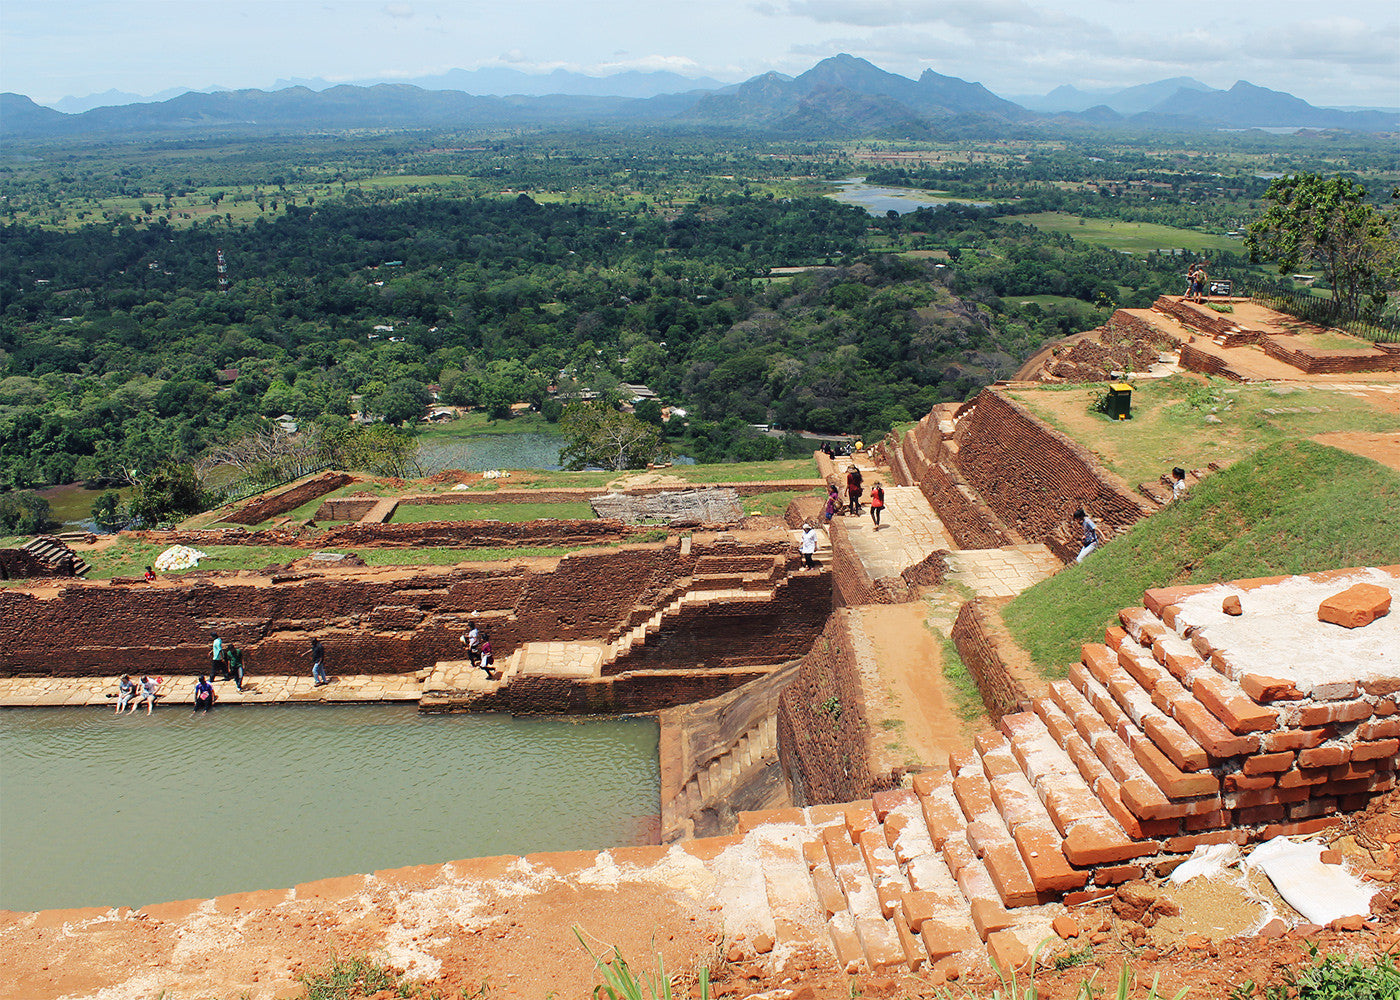 View of tropical landscape, Sigiriya